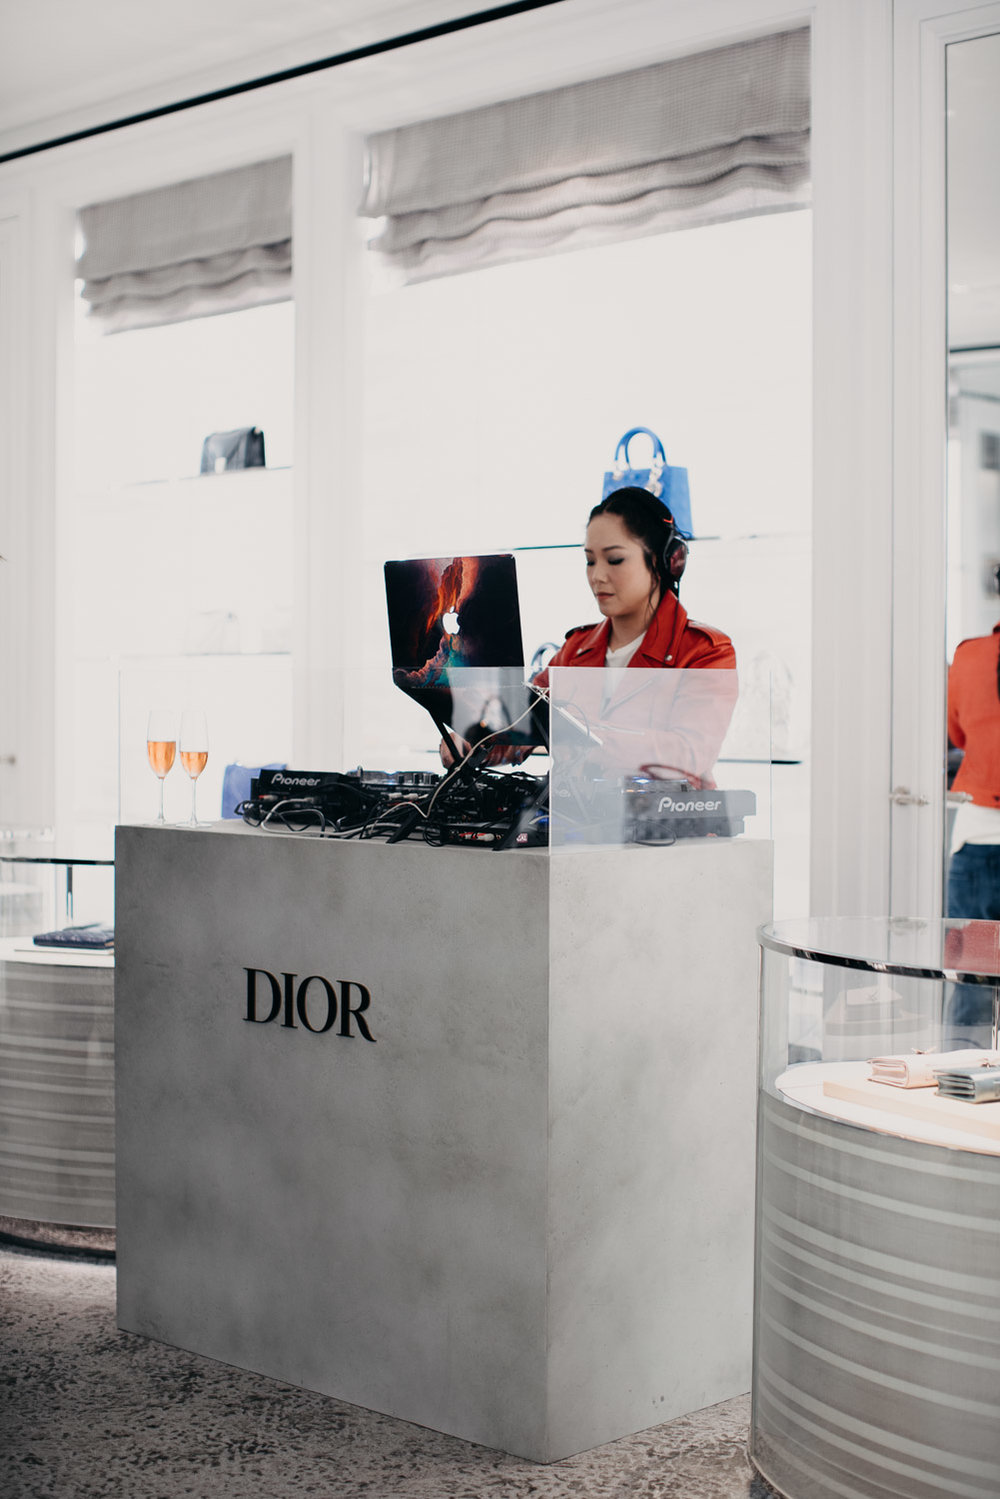 11-dior-hong-kong-womens-dior-event-photography.jpg